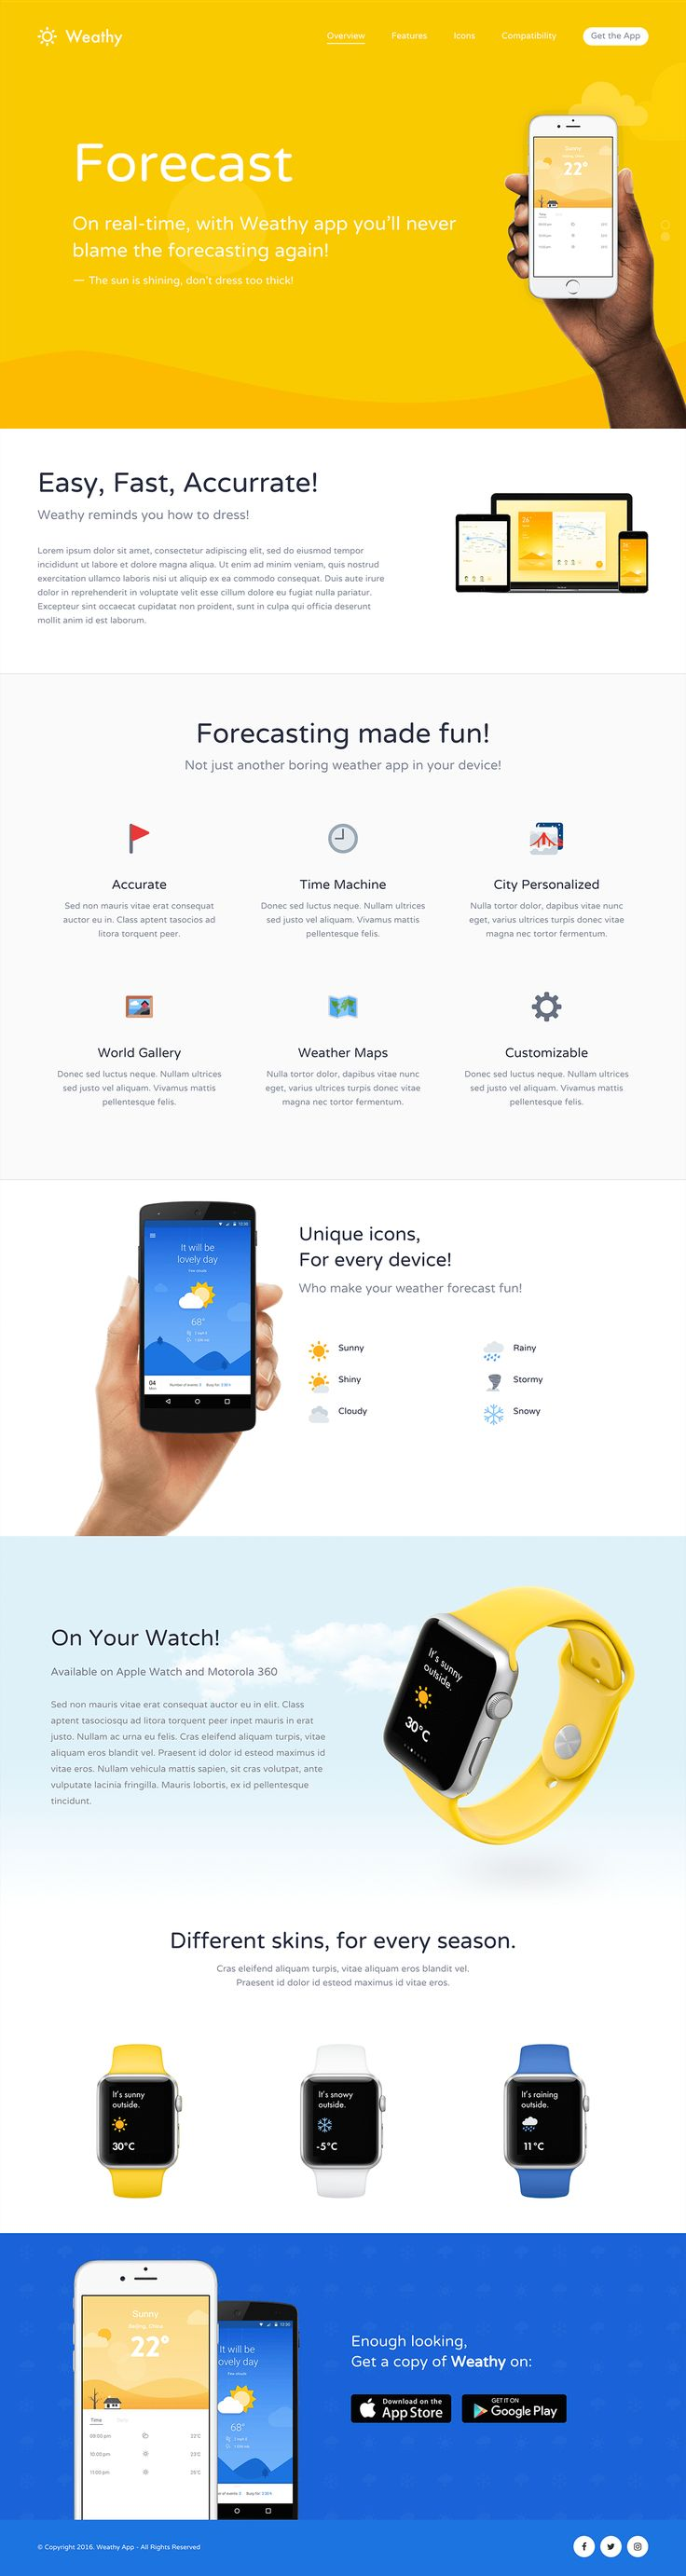 'Kalium' is a robust multi-purpose WordPress theme with a slick Landing Page layout option. This demo featured here is for a weather app but could easily be adapted to showcase any product, website or application. The design is refreshing for a template with good whitespace, crisp devices, clean fonts and nice touch with the moving cloud background. You also know you're going to be looked after by the Laborator theme team as 'Kalium' has a 5 star rating on ThemeForest!